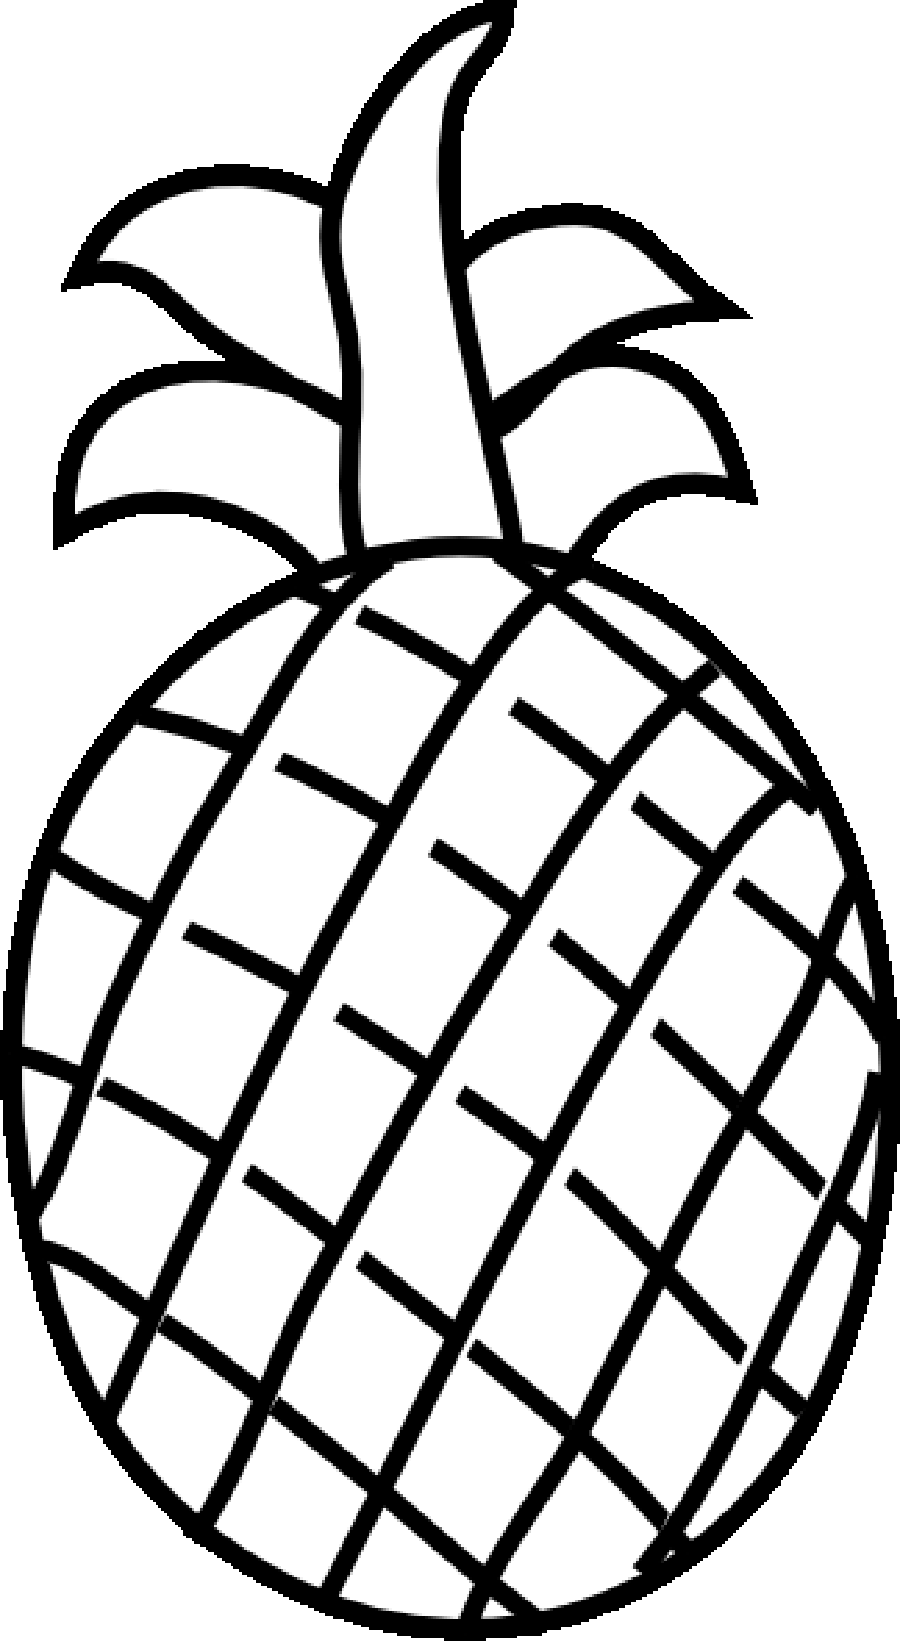 coloring image fruits fruit line drawing at getdrawings free download image fruits coloring